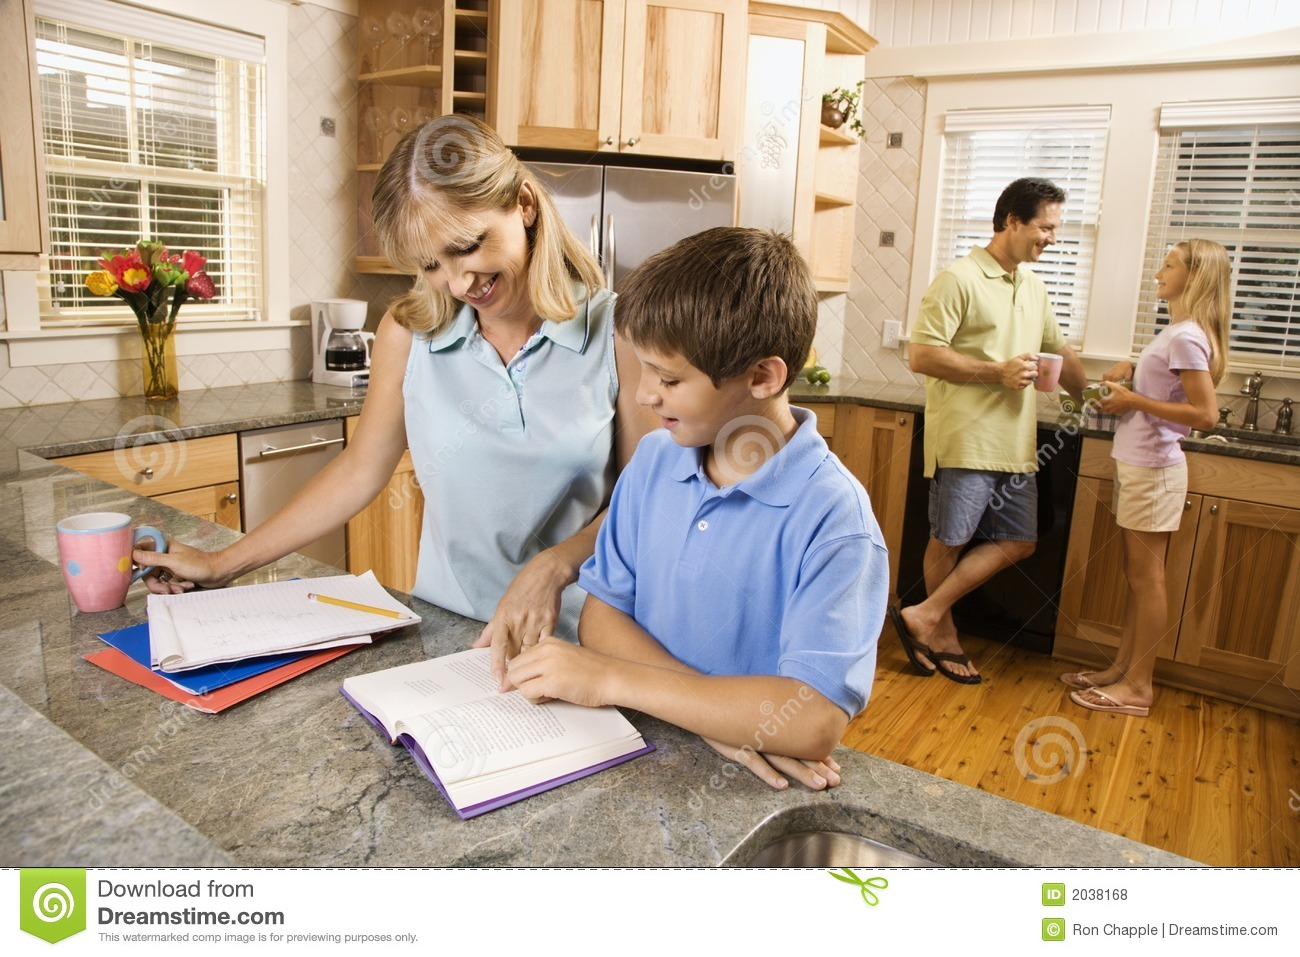 Ikea Küche Student Family In Kitchen Doing Homework Stock Photo Image Of